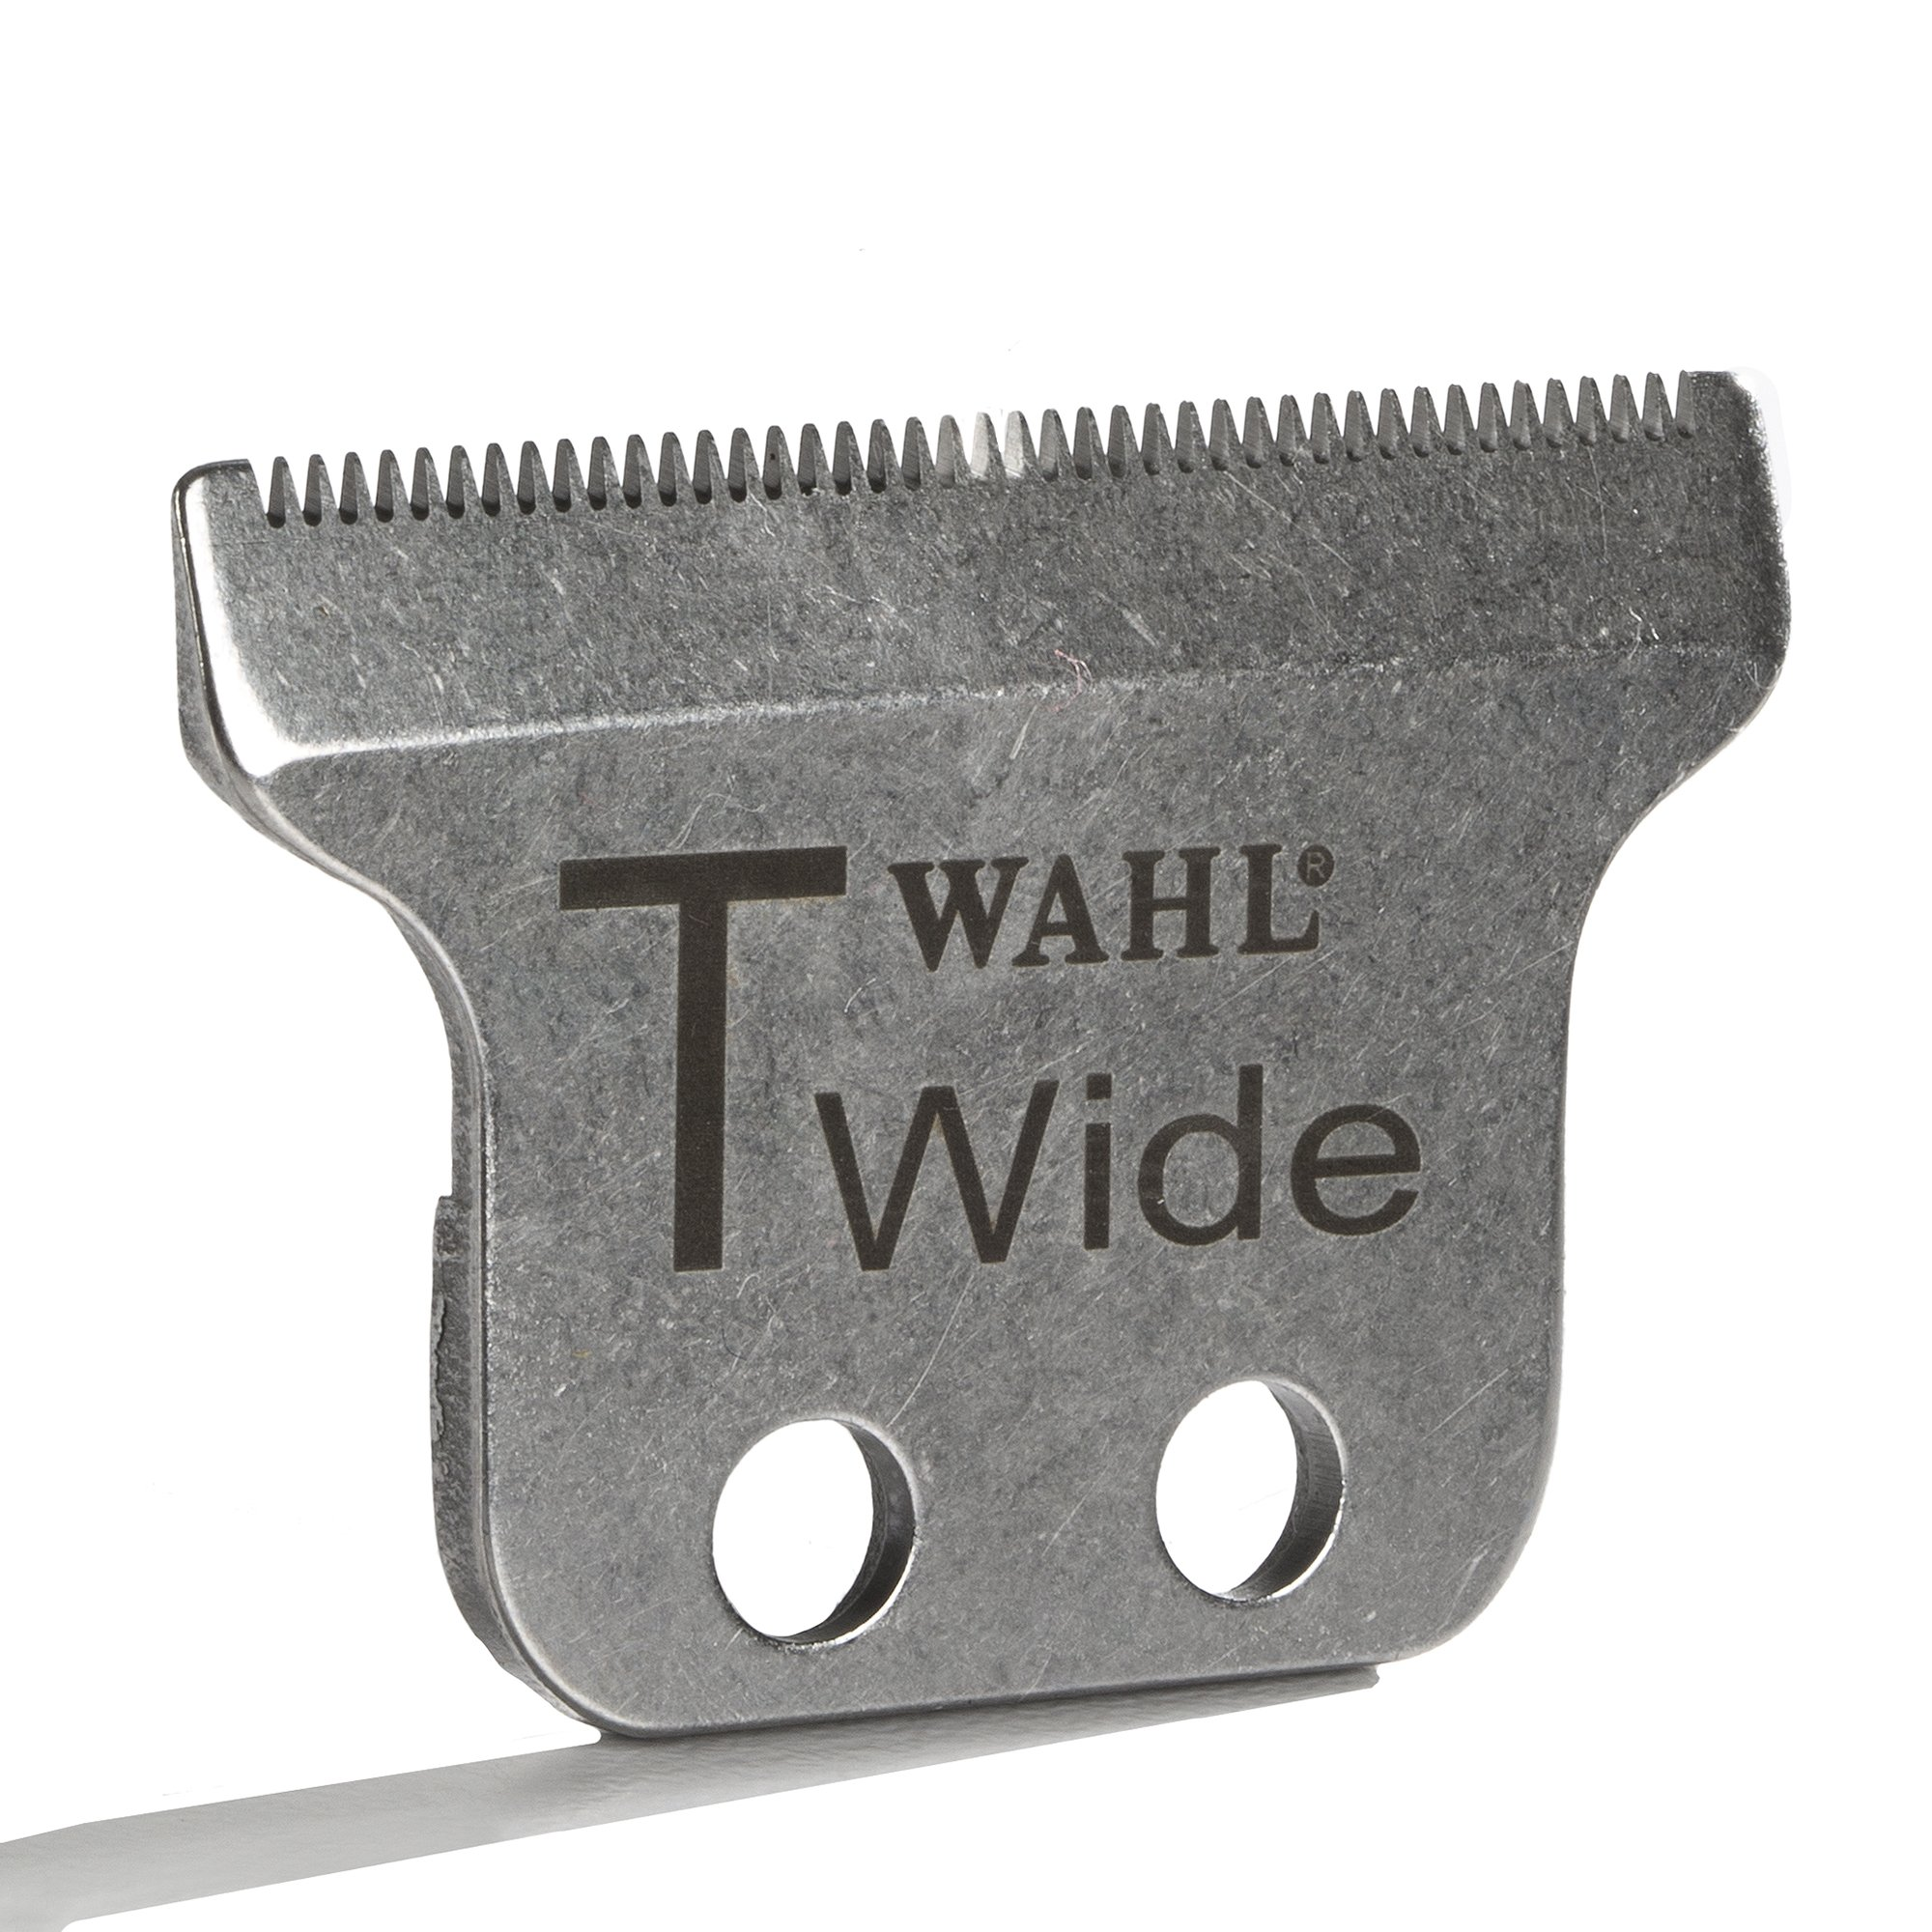 Wide Professional T-Wide Adjustable Trimmer Blade Set #2215 – For the 5 Star Series Detailer – Includes Oil, Screws & Instructions by Wahl Professional (Image #6)